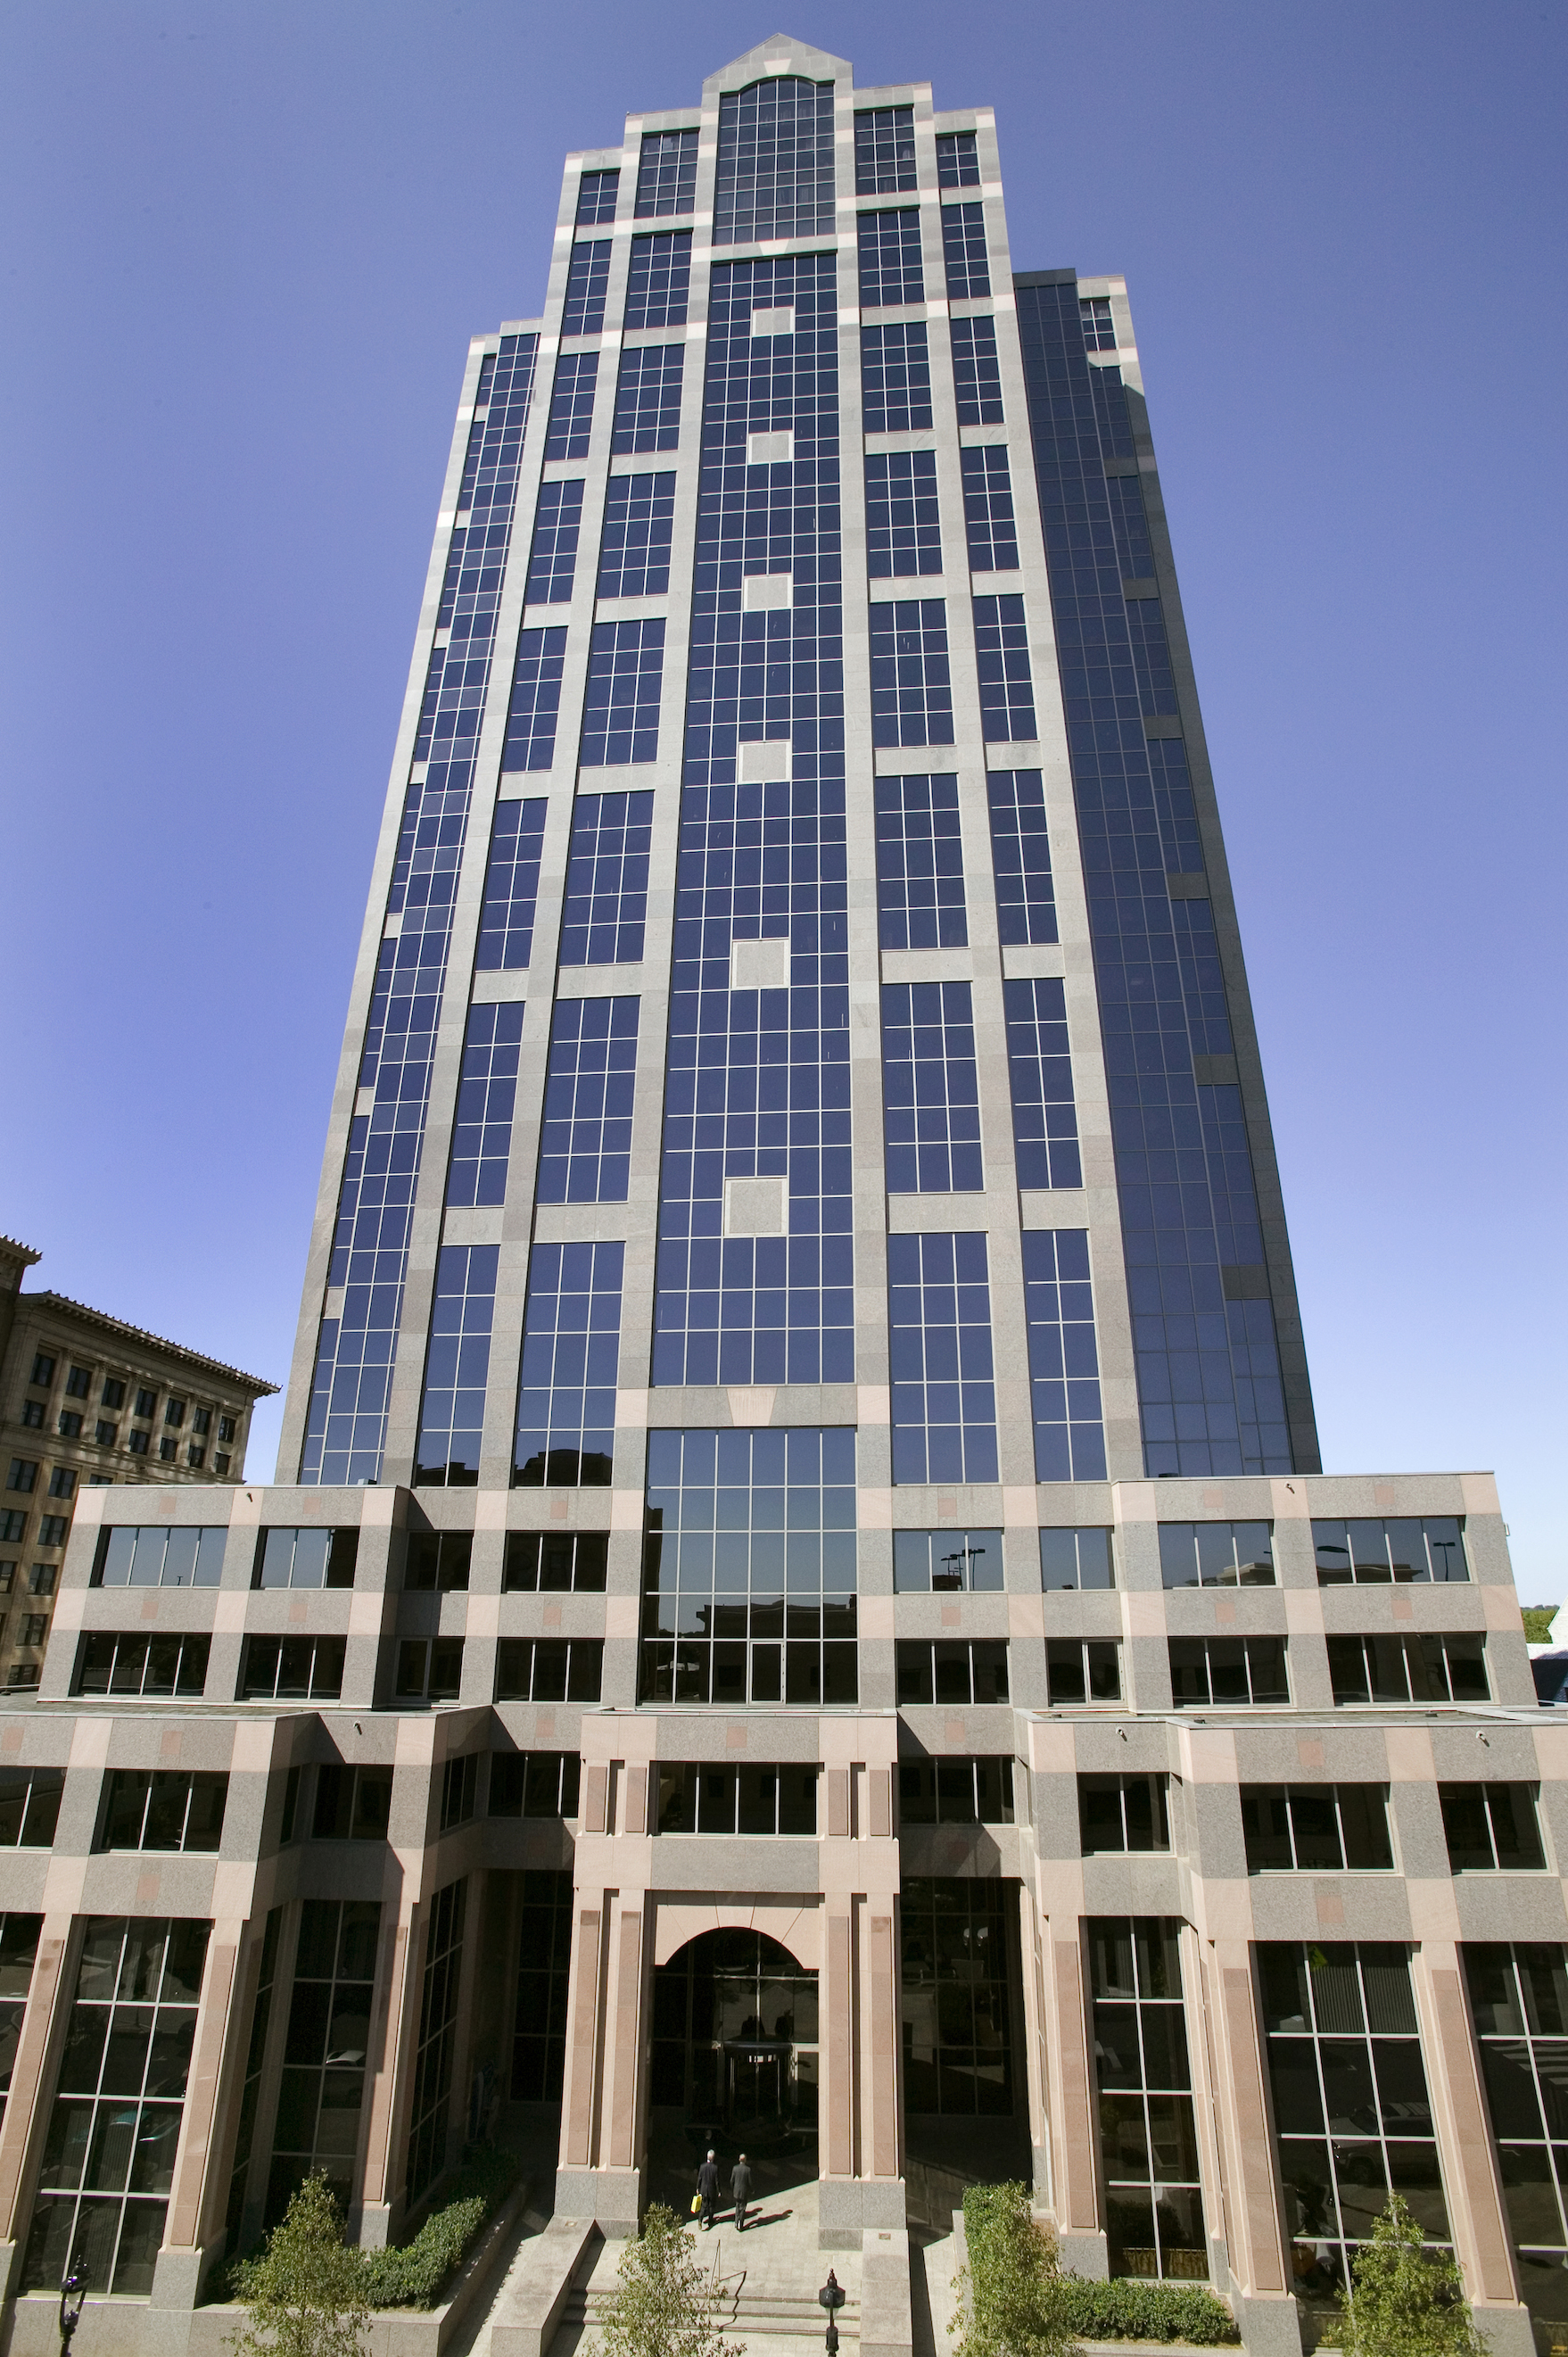 Seeking superheroes to rappel nc skyline nc press release for Special landmarks